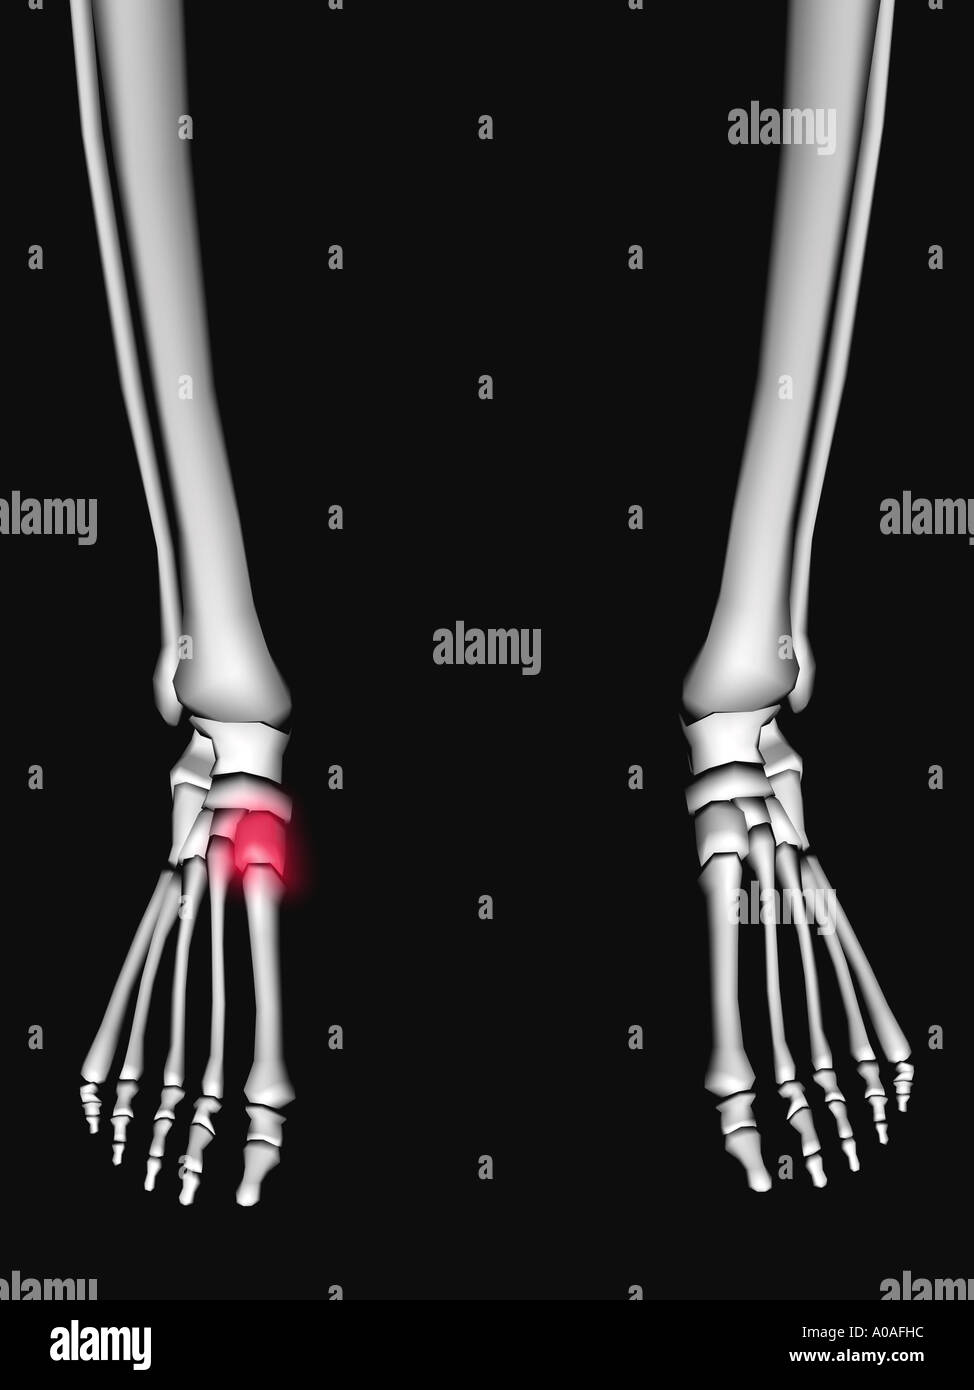 Illustrative diagram showing skeleton showing tarsal highlighted in a red glow - Stock Image